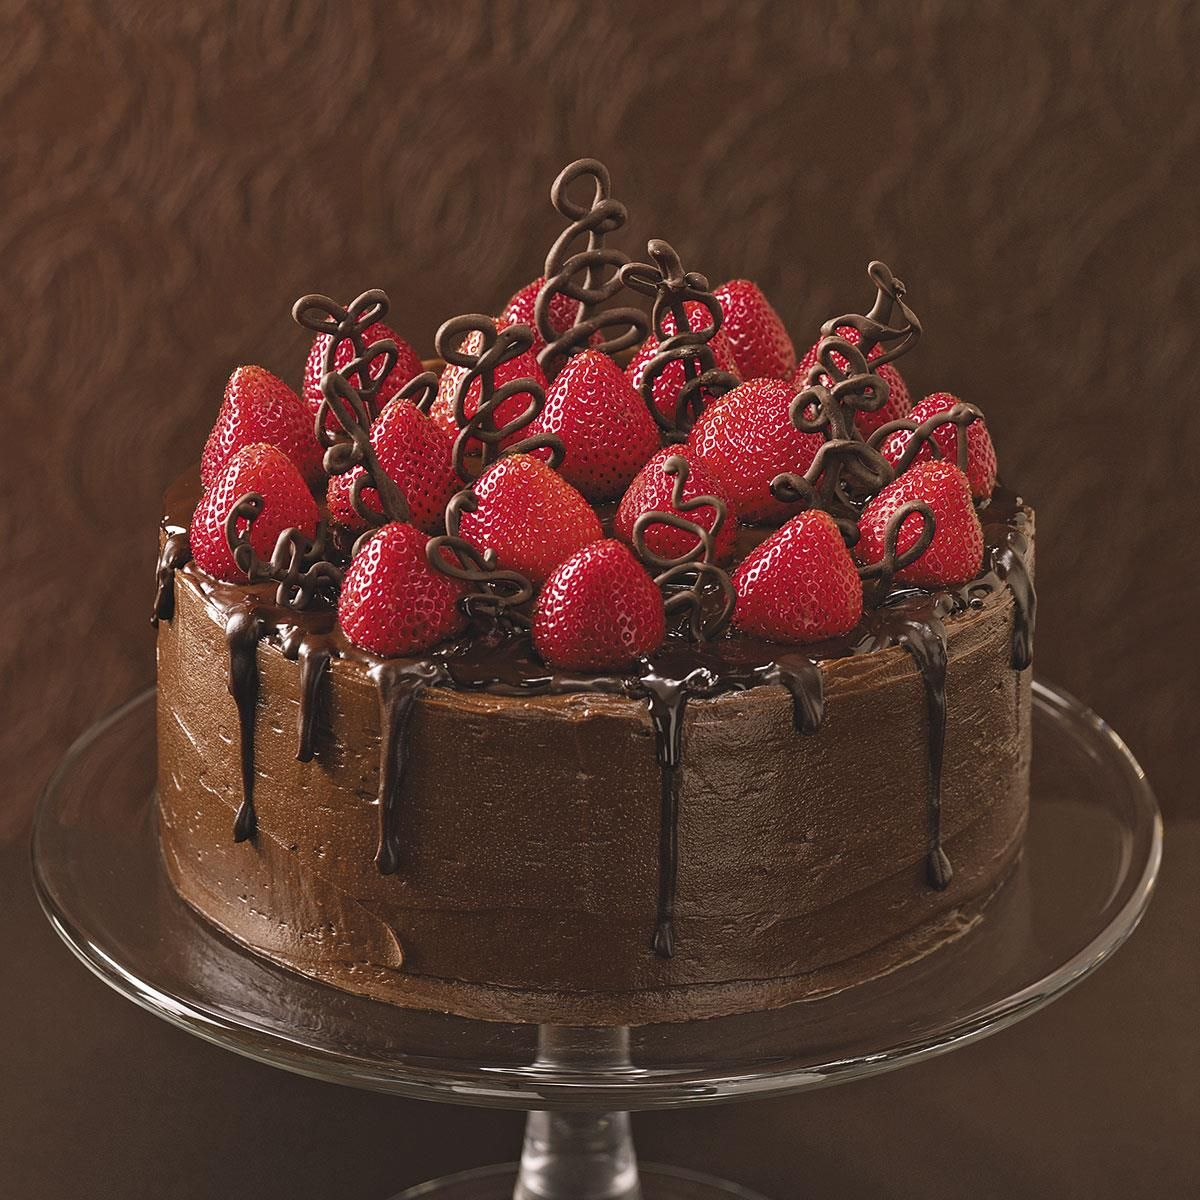 Chocolate-Strawberry Celebration Cake #celebrationcakes